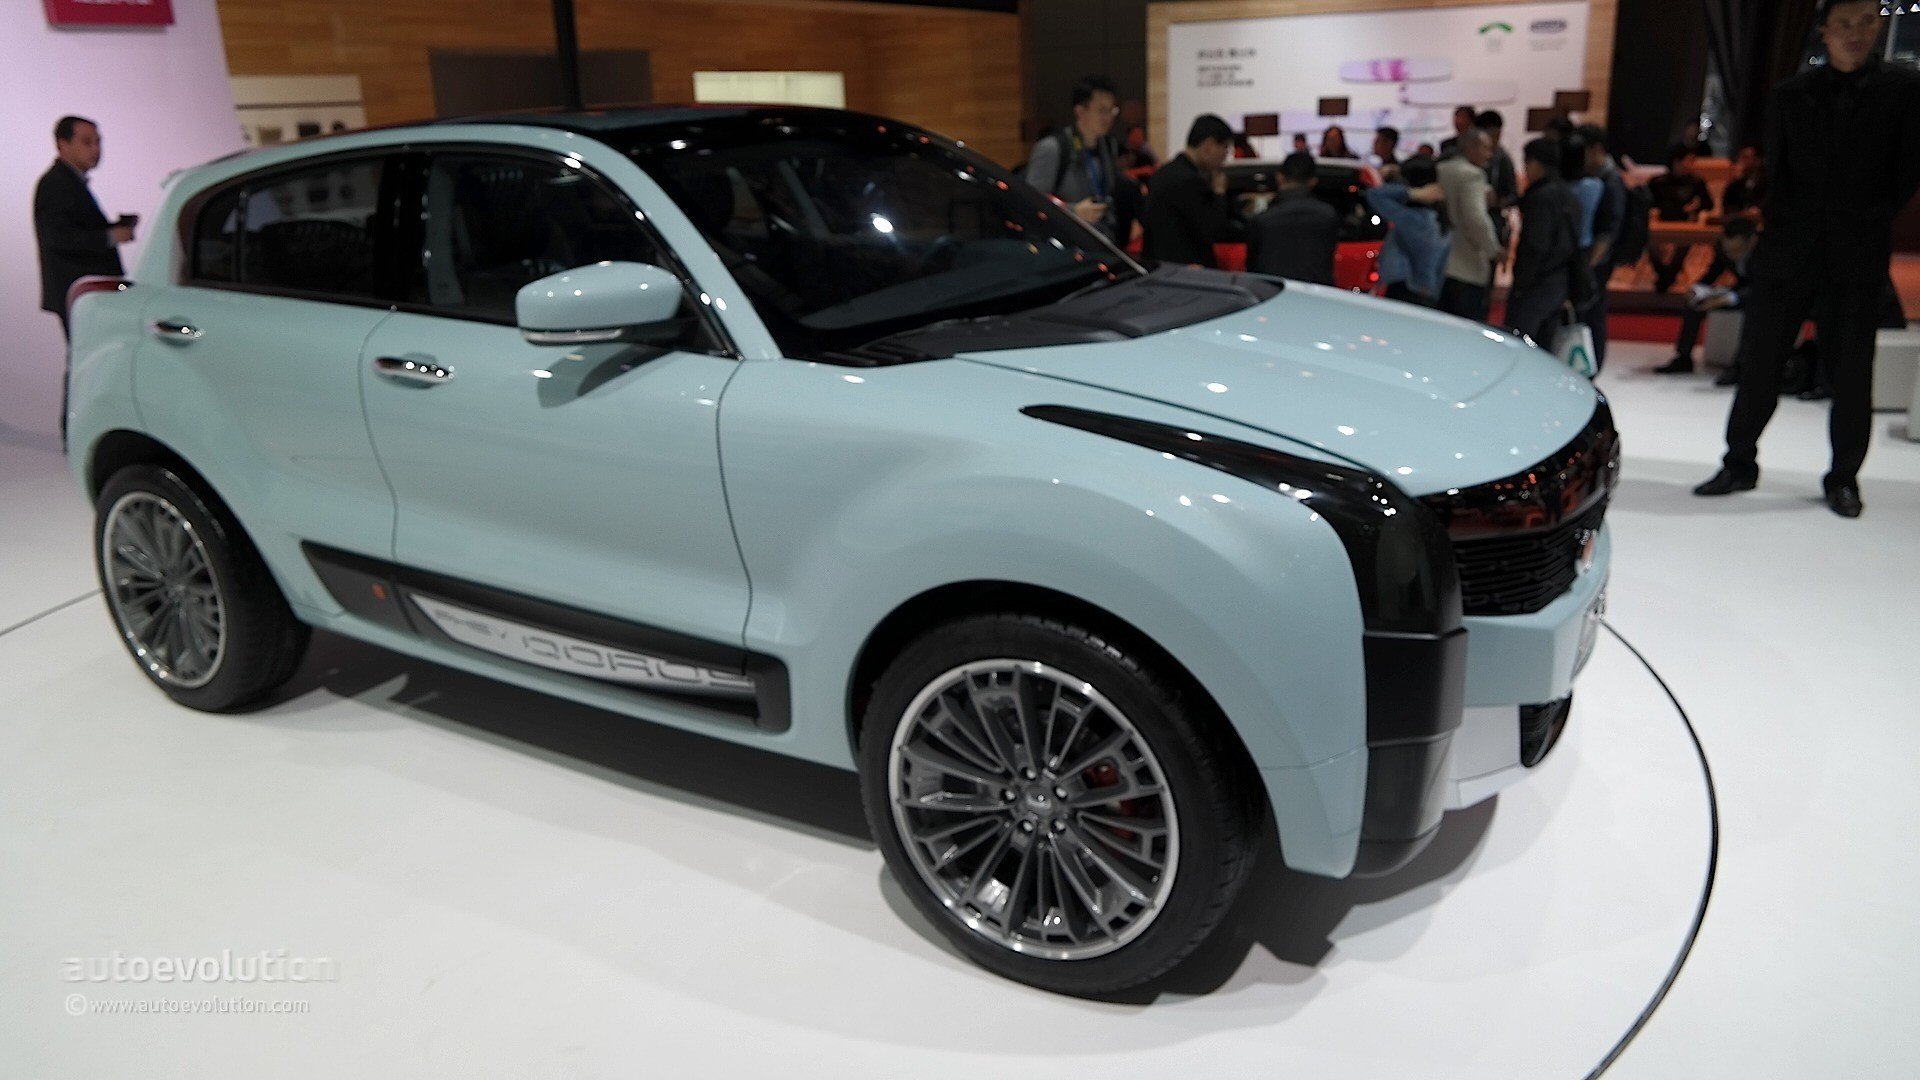 qoros 2 hybrid crossover concept resembles a cadillac nissan gt r mix in shanghai autoevolution. Black Bedroom Furniture Sets. Home Design Ideas